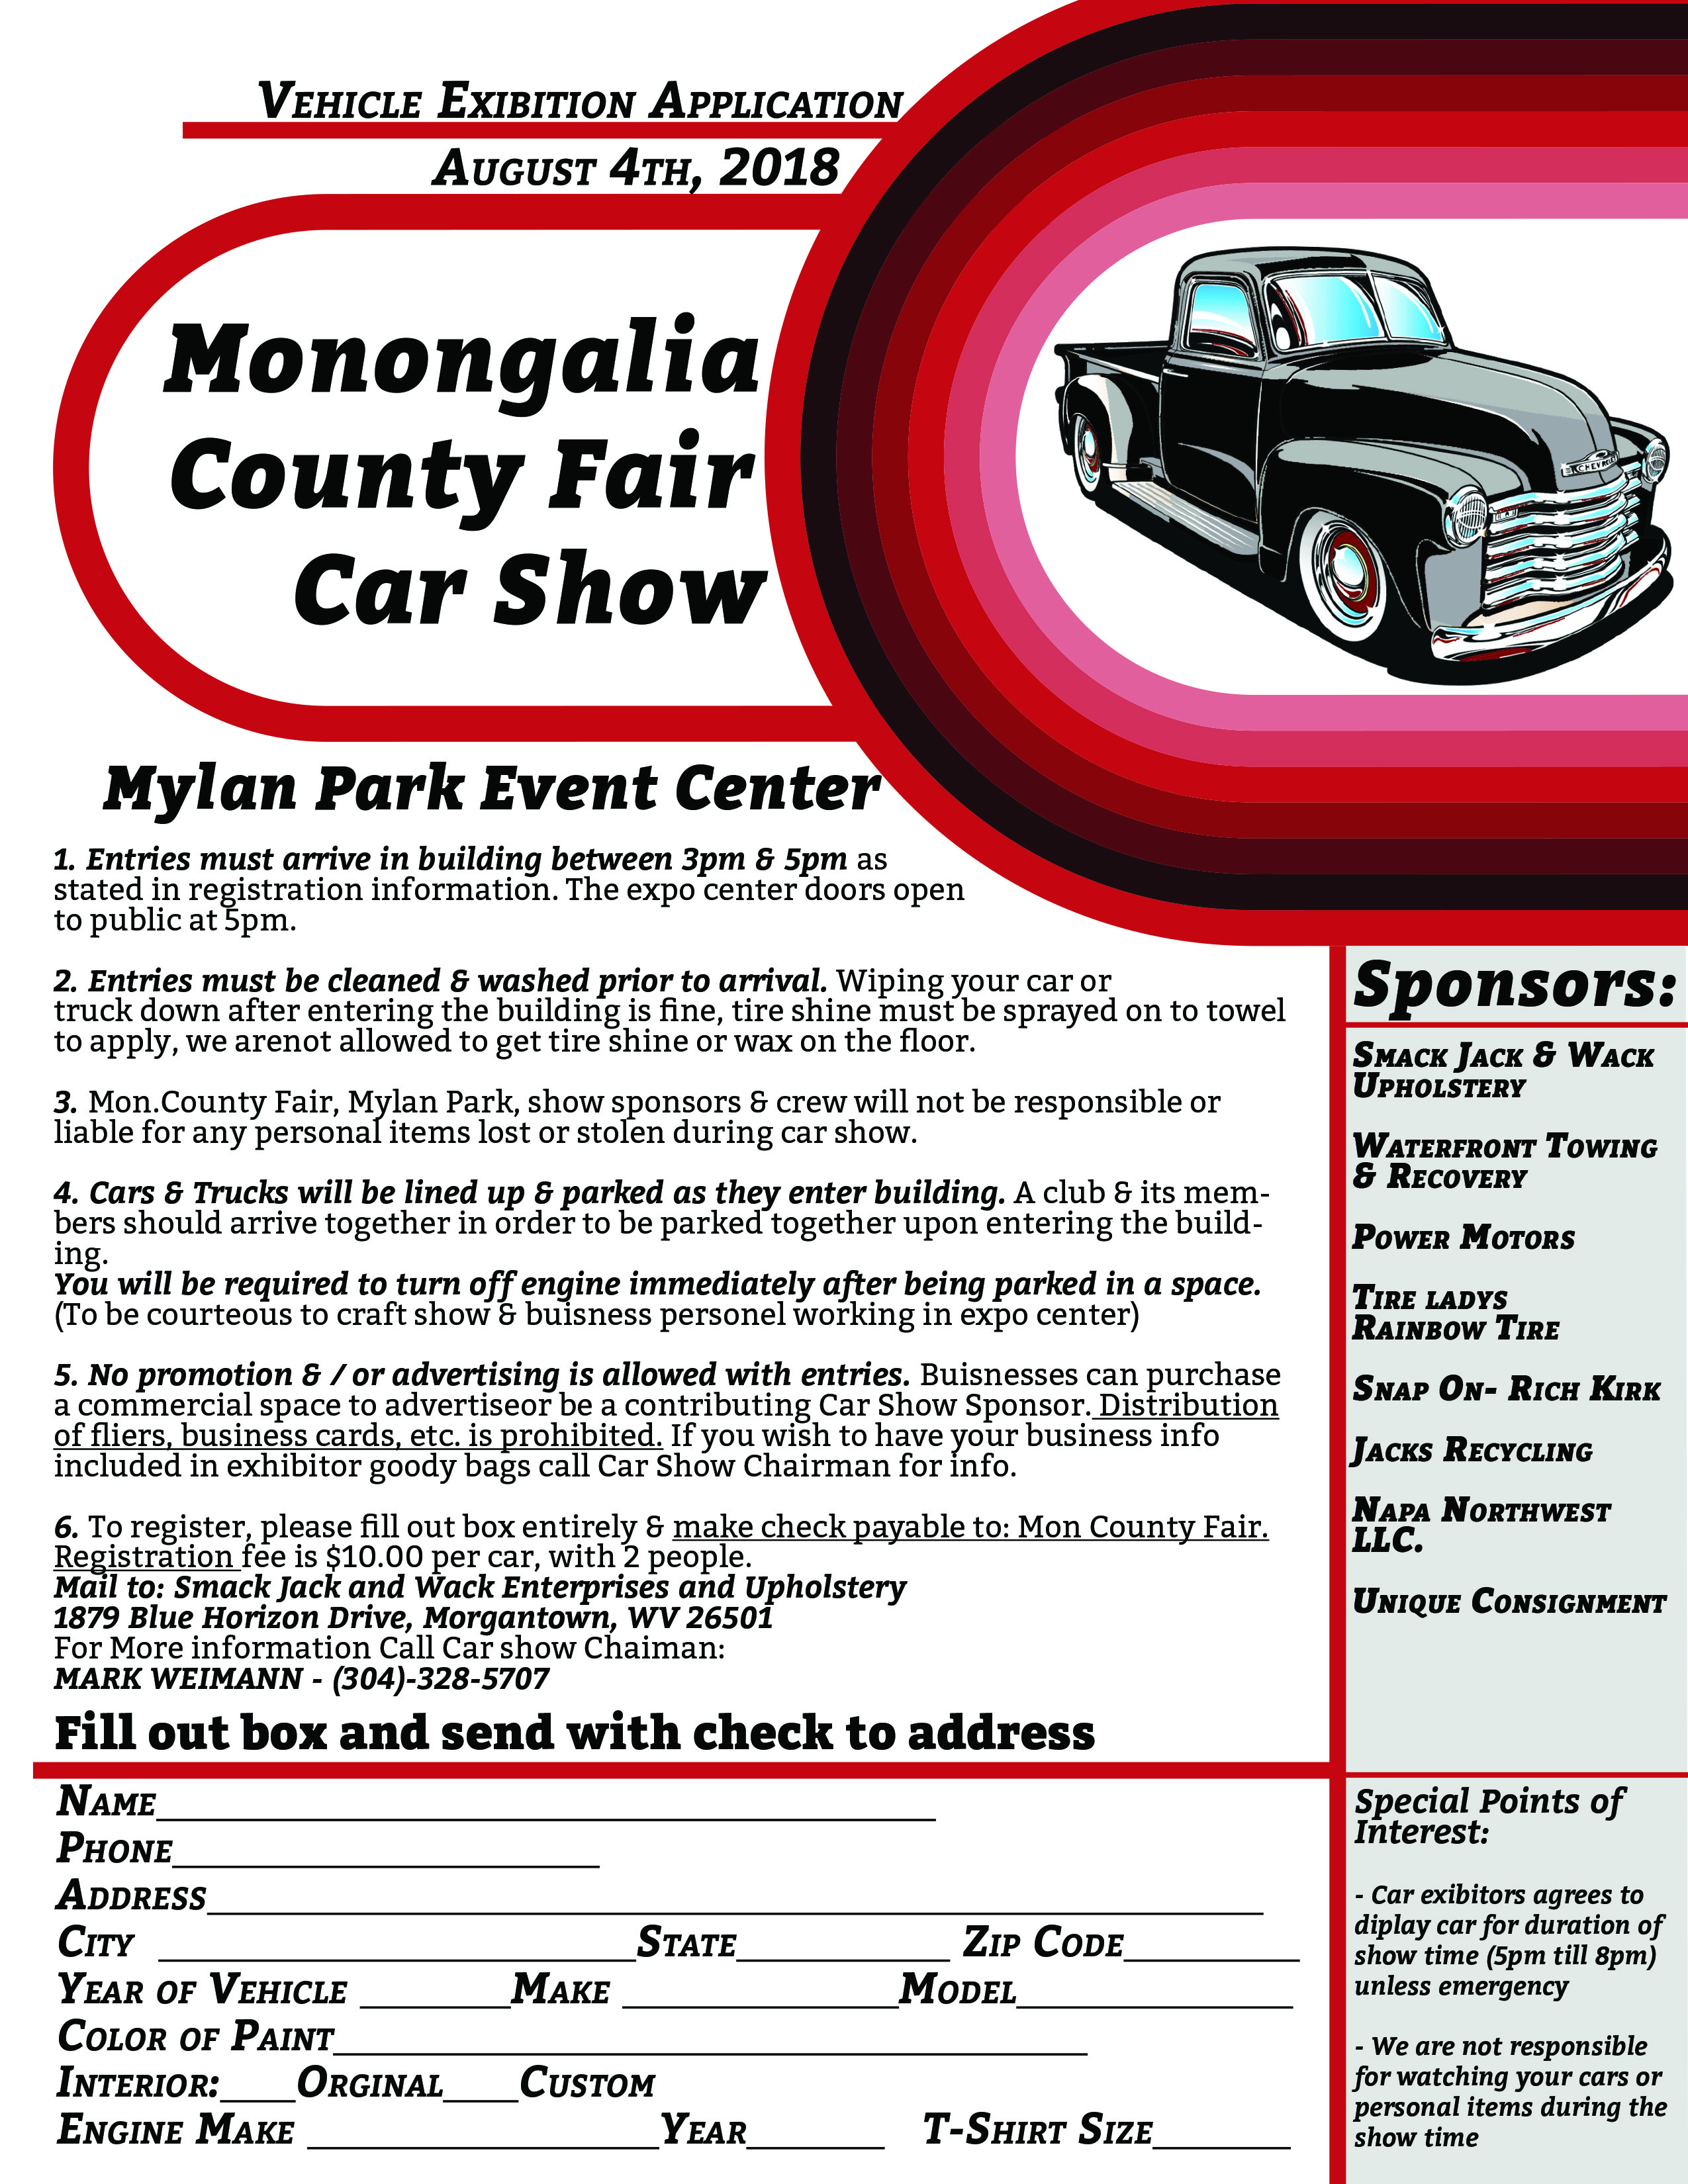 Car Show MONONGALIA COUNTY FAIR - Any car shows near me